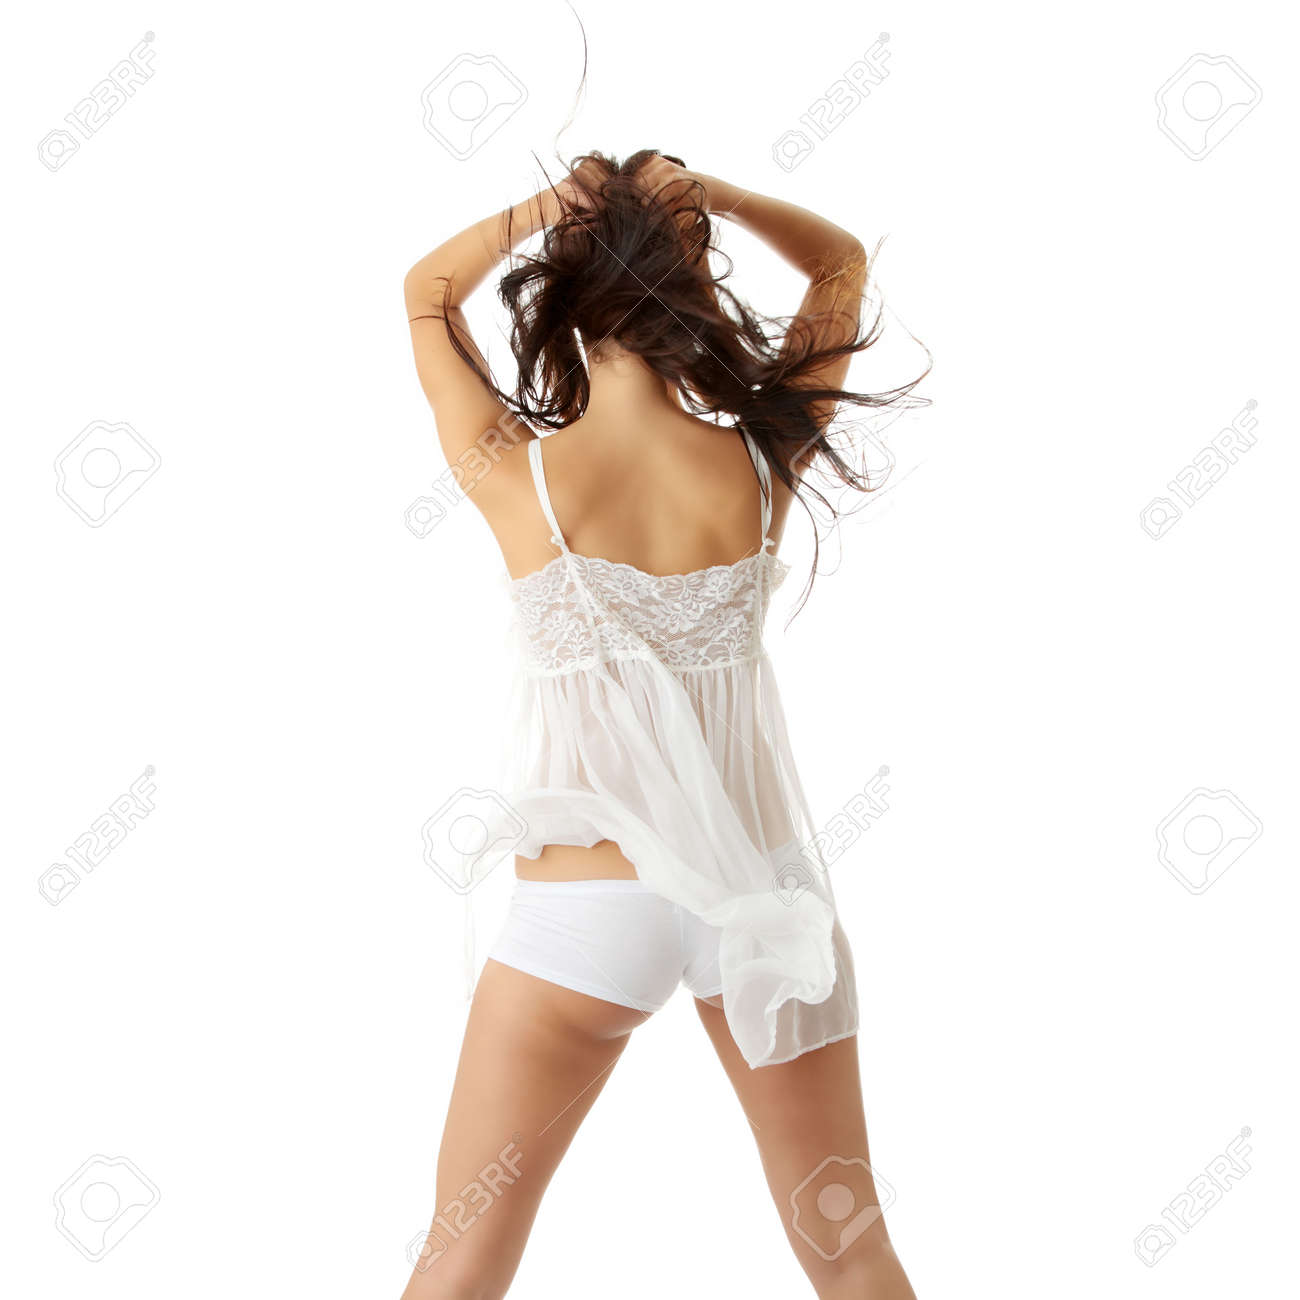 Bautiful young caucasian woman in white sexy lingerie with wind in her hairs isolated on white background Stock Photo - 5757865